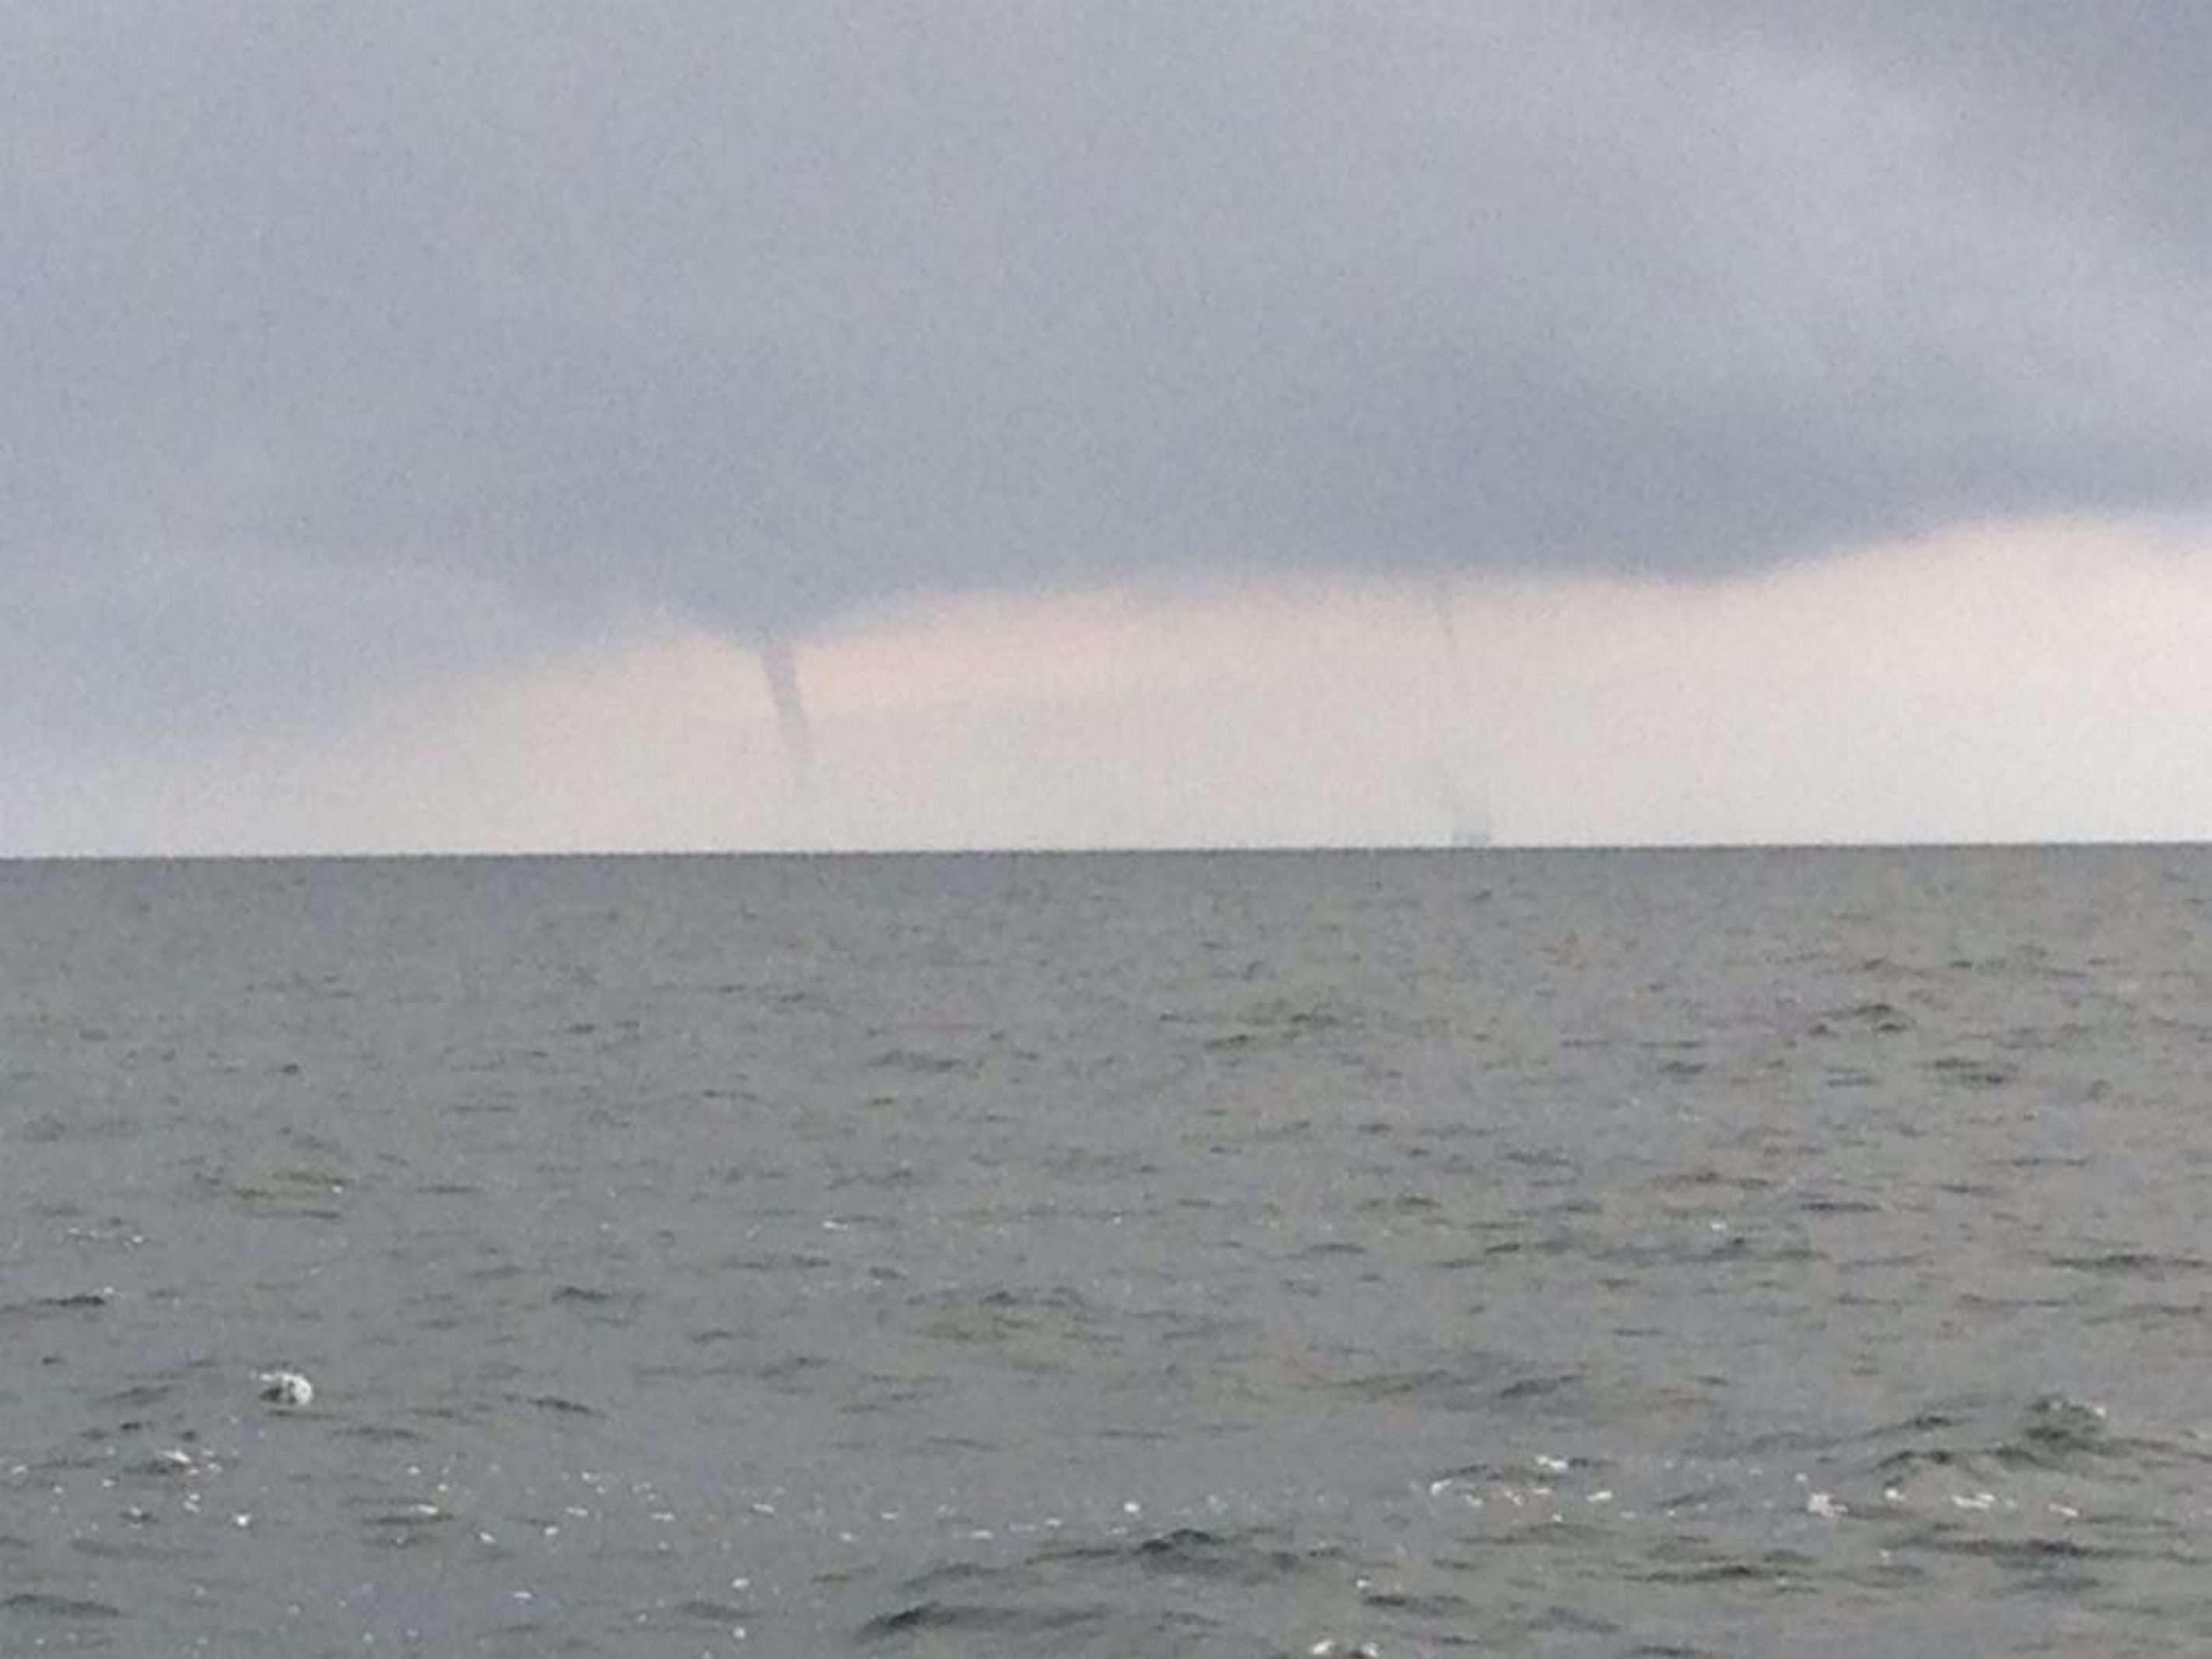 Water spouts on Lake Erie near Dunkirk just before 8 a.m. this morning. (T.J. Pignataro)